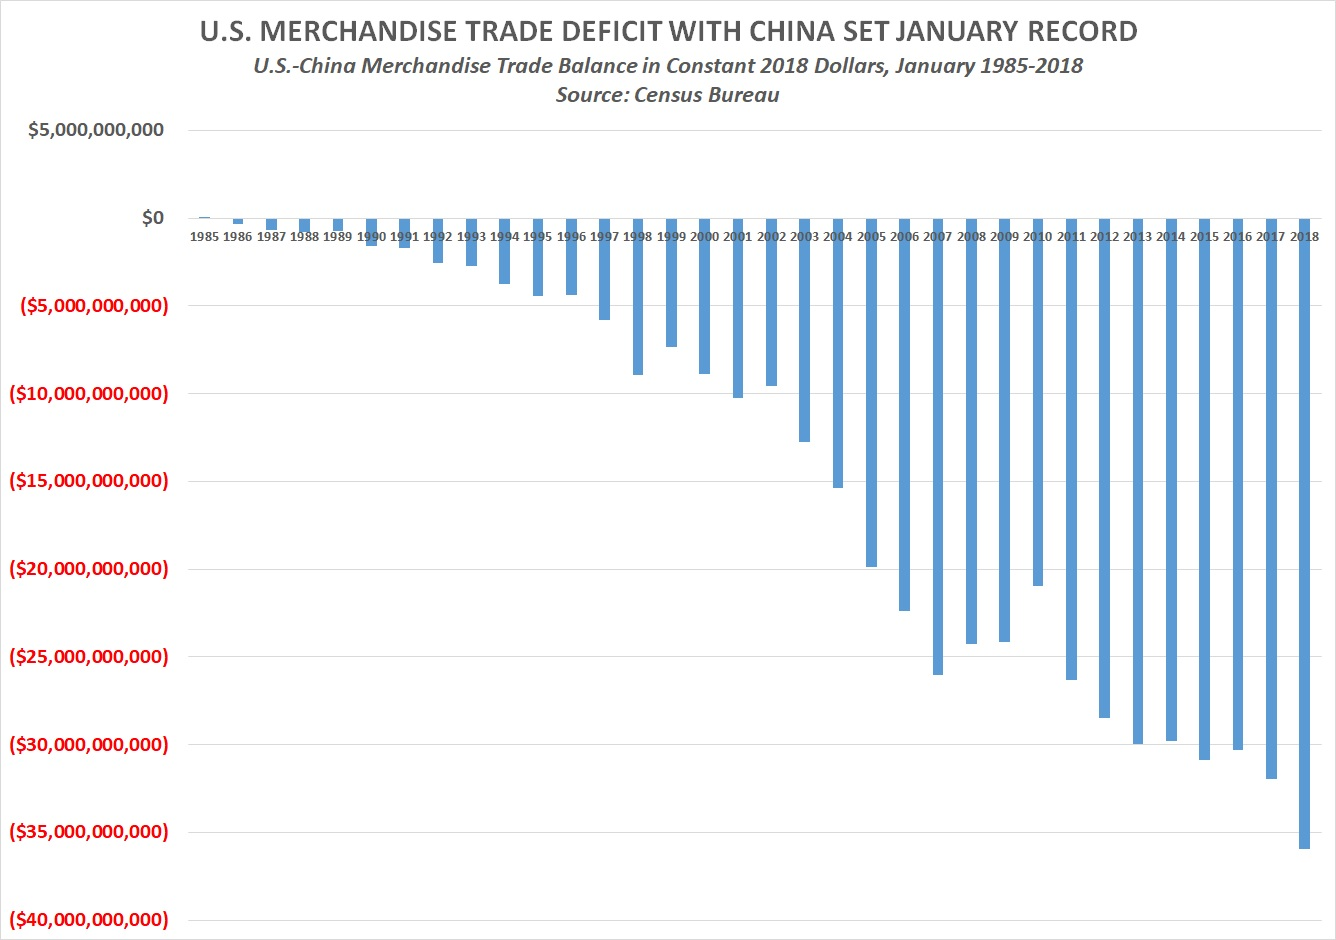 chinas vanishing trade imbalance Global trade and debt imbalances are a rising cause for concern in 2006, the international monetary fund launched an initiative to unwind the large global imbalances in an orderly fashion.